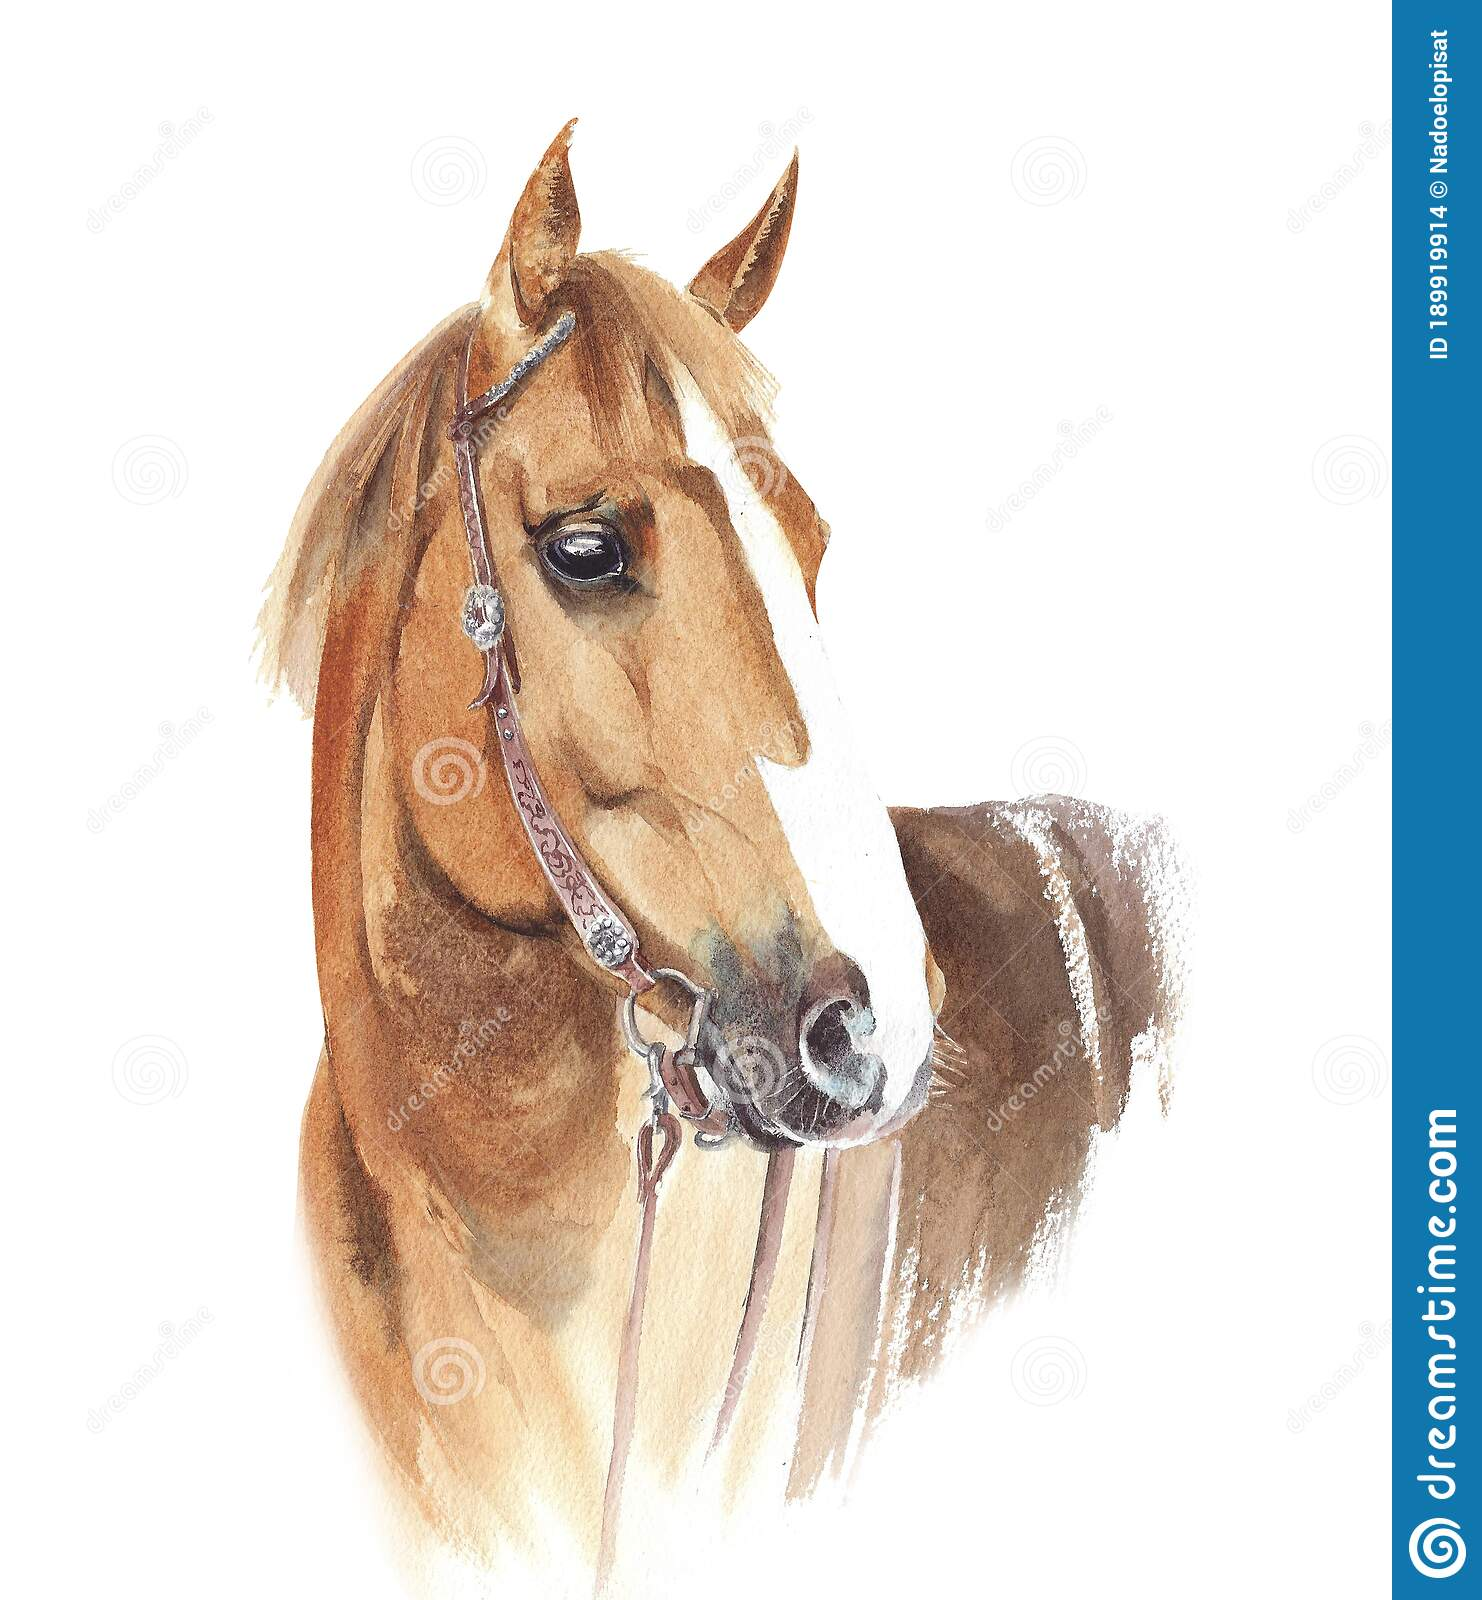 Horse Head Watercolor Painting Photos Free Royalty Free Stock Photos From Dreamstime